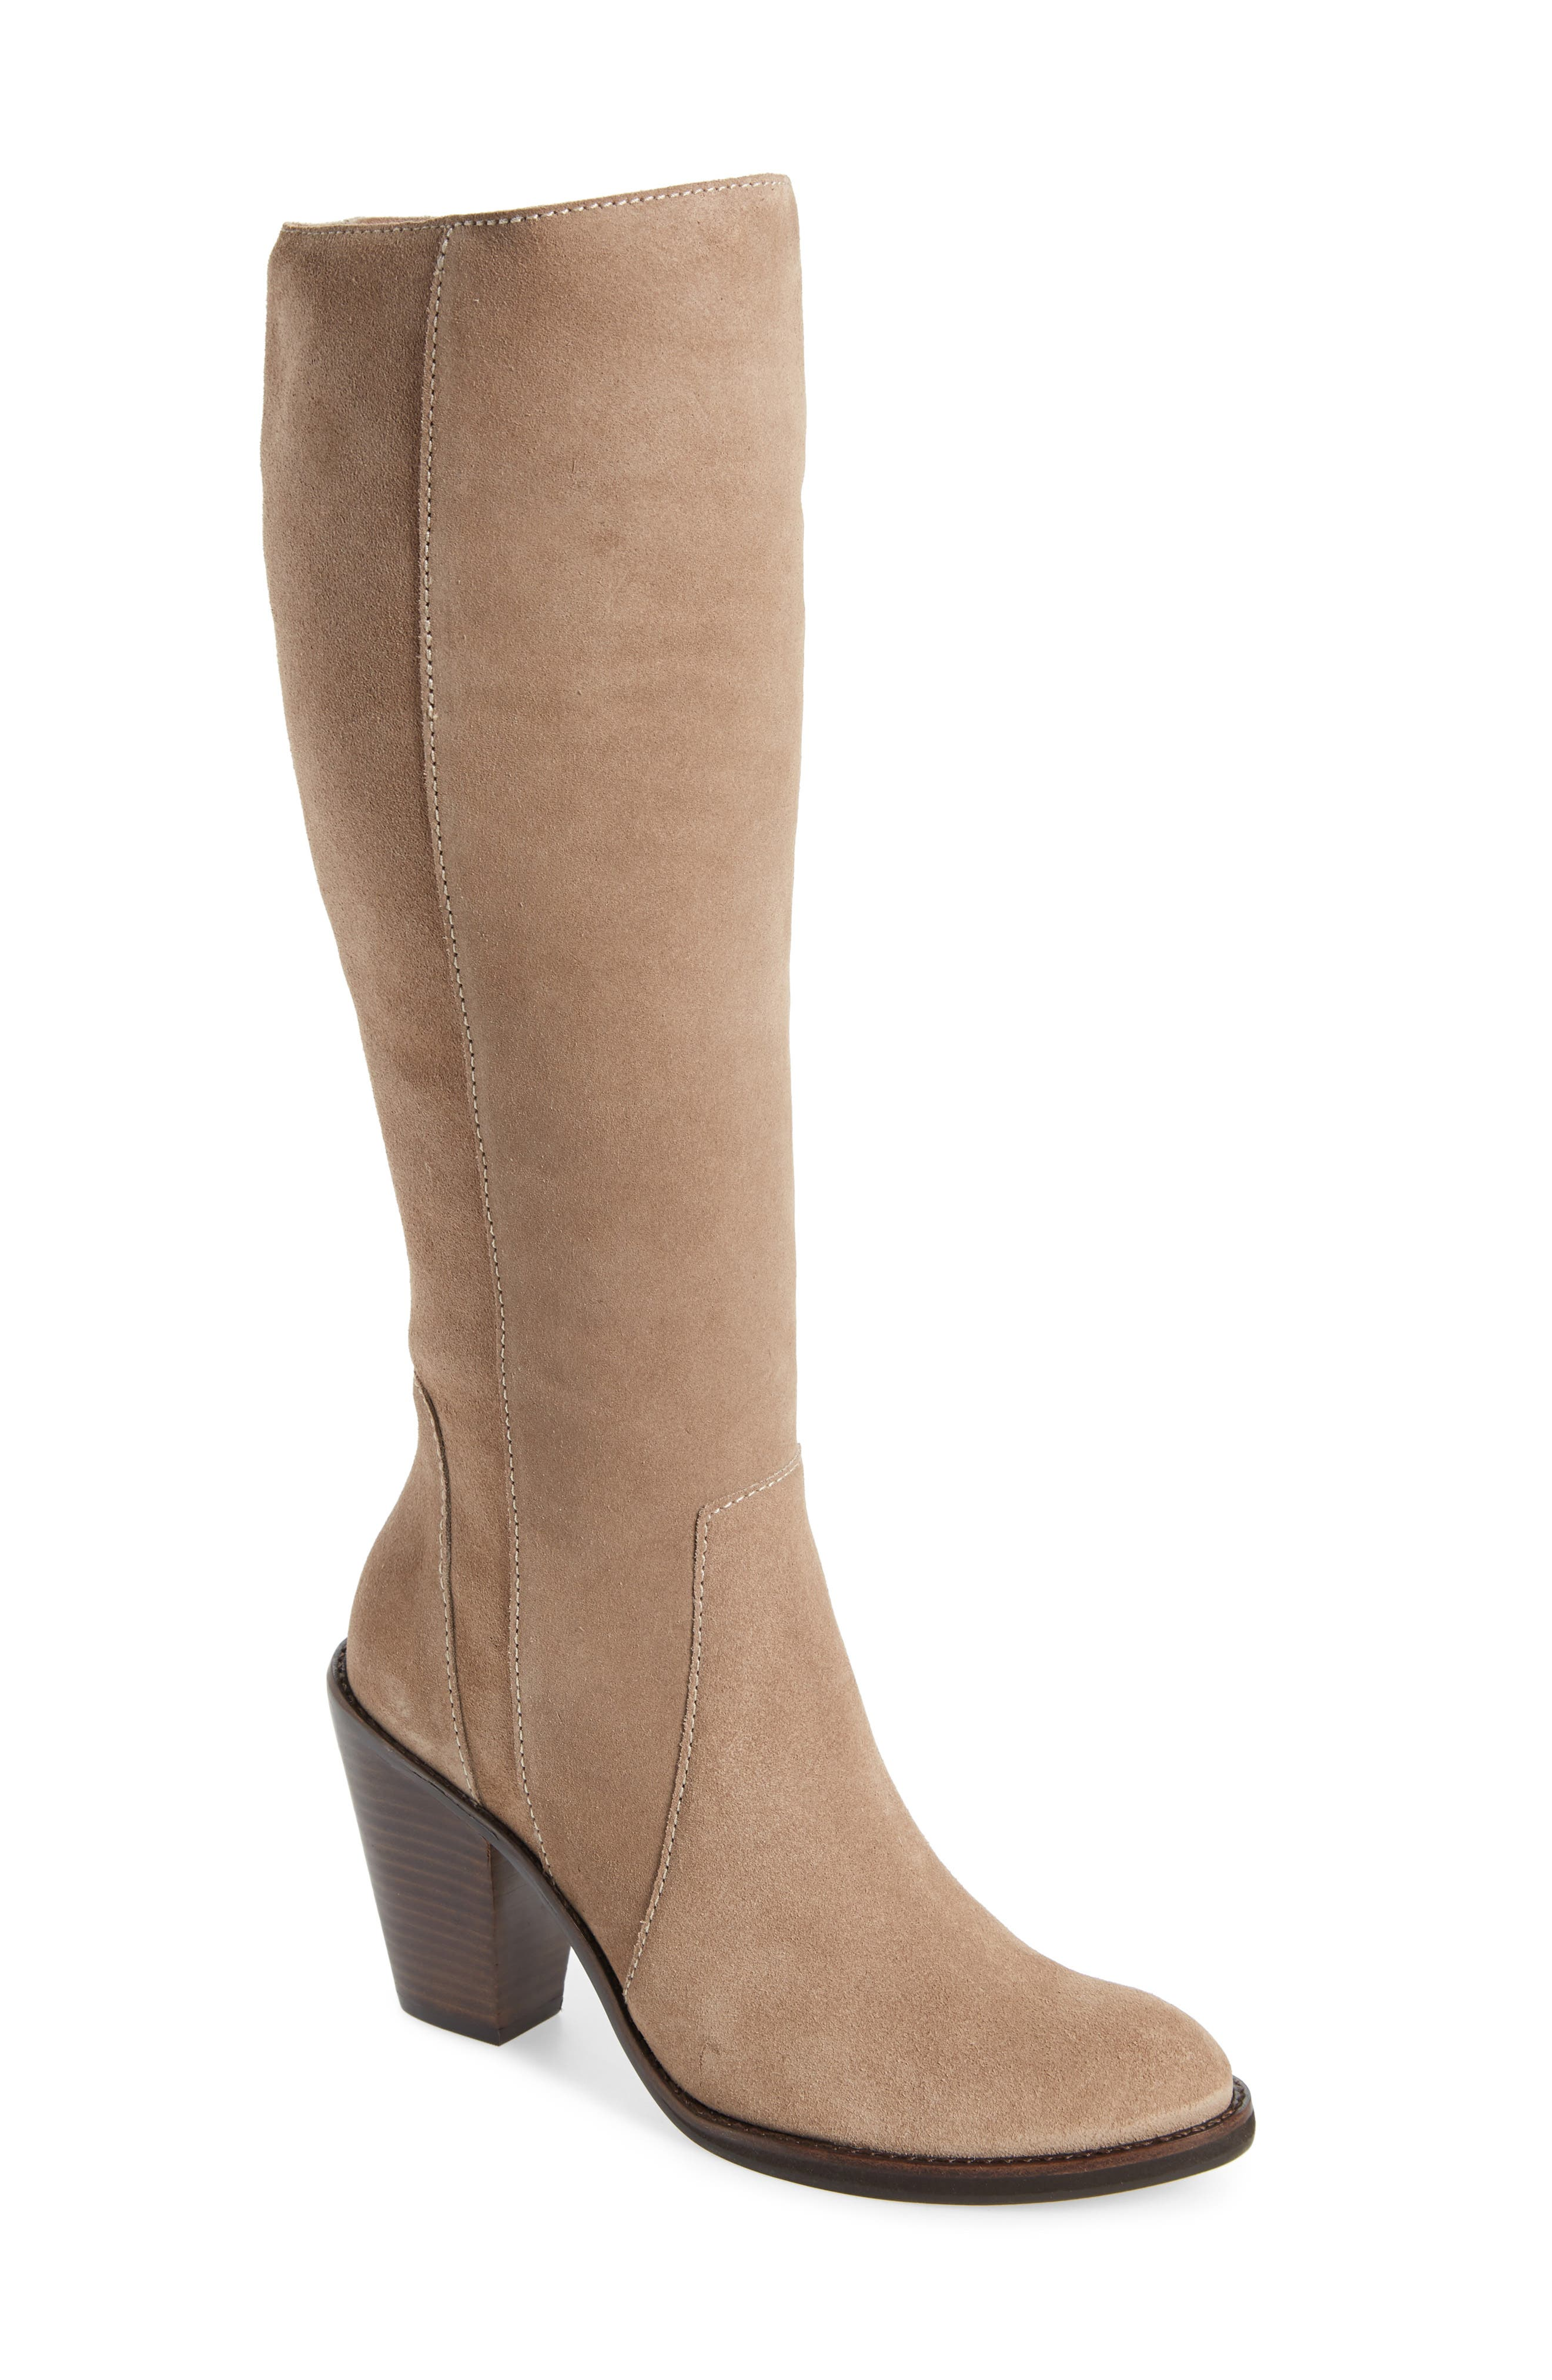 LUST FOR LIFE Jordan Boot in Taupe Suede